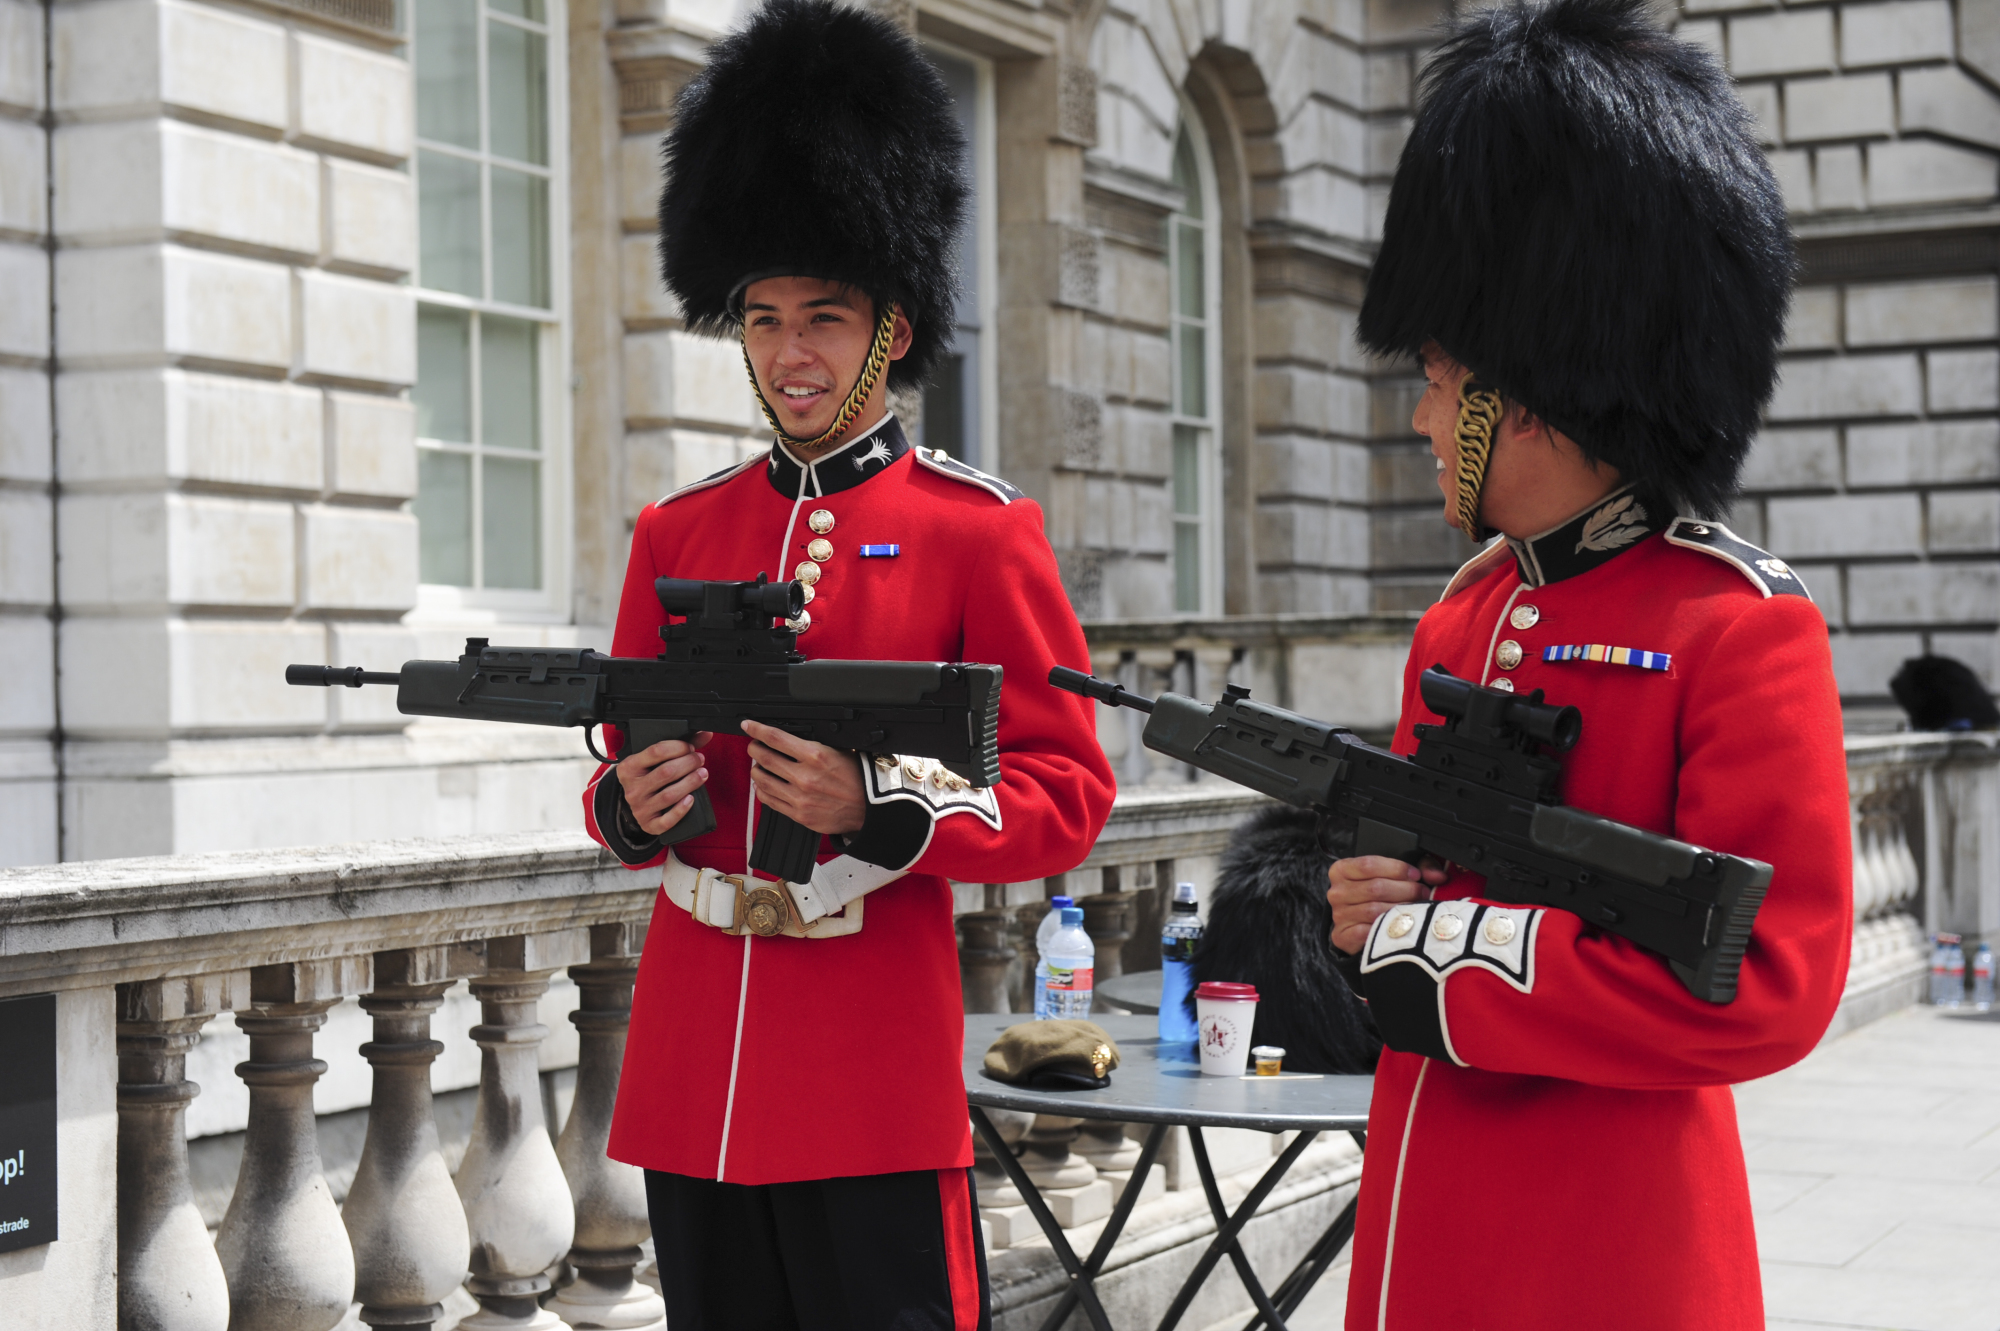 Dressed as Queen's Guards